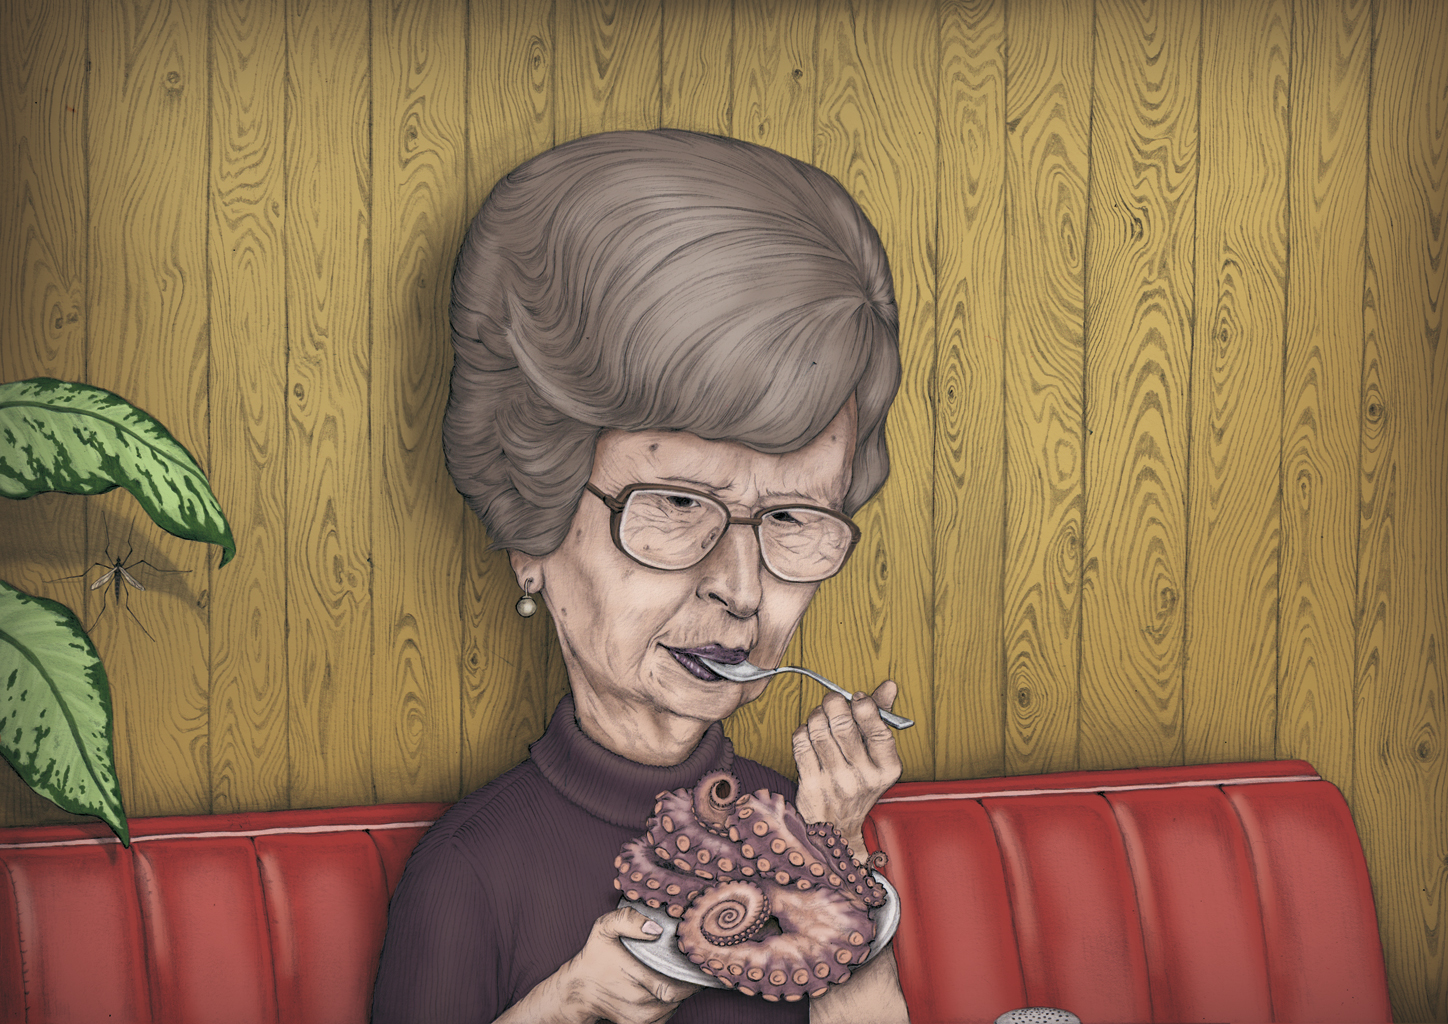 illustration, illustrations, illustrator, illustrators, octopus, animal, woman, women, wood, paneling, panels, plant, plants, eat, eating, old, elderly, gray hair, glasses